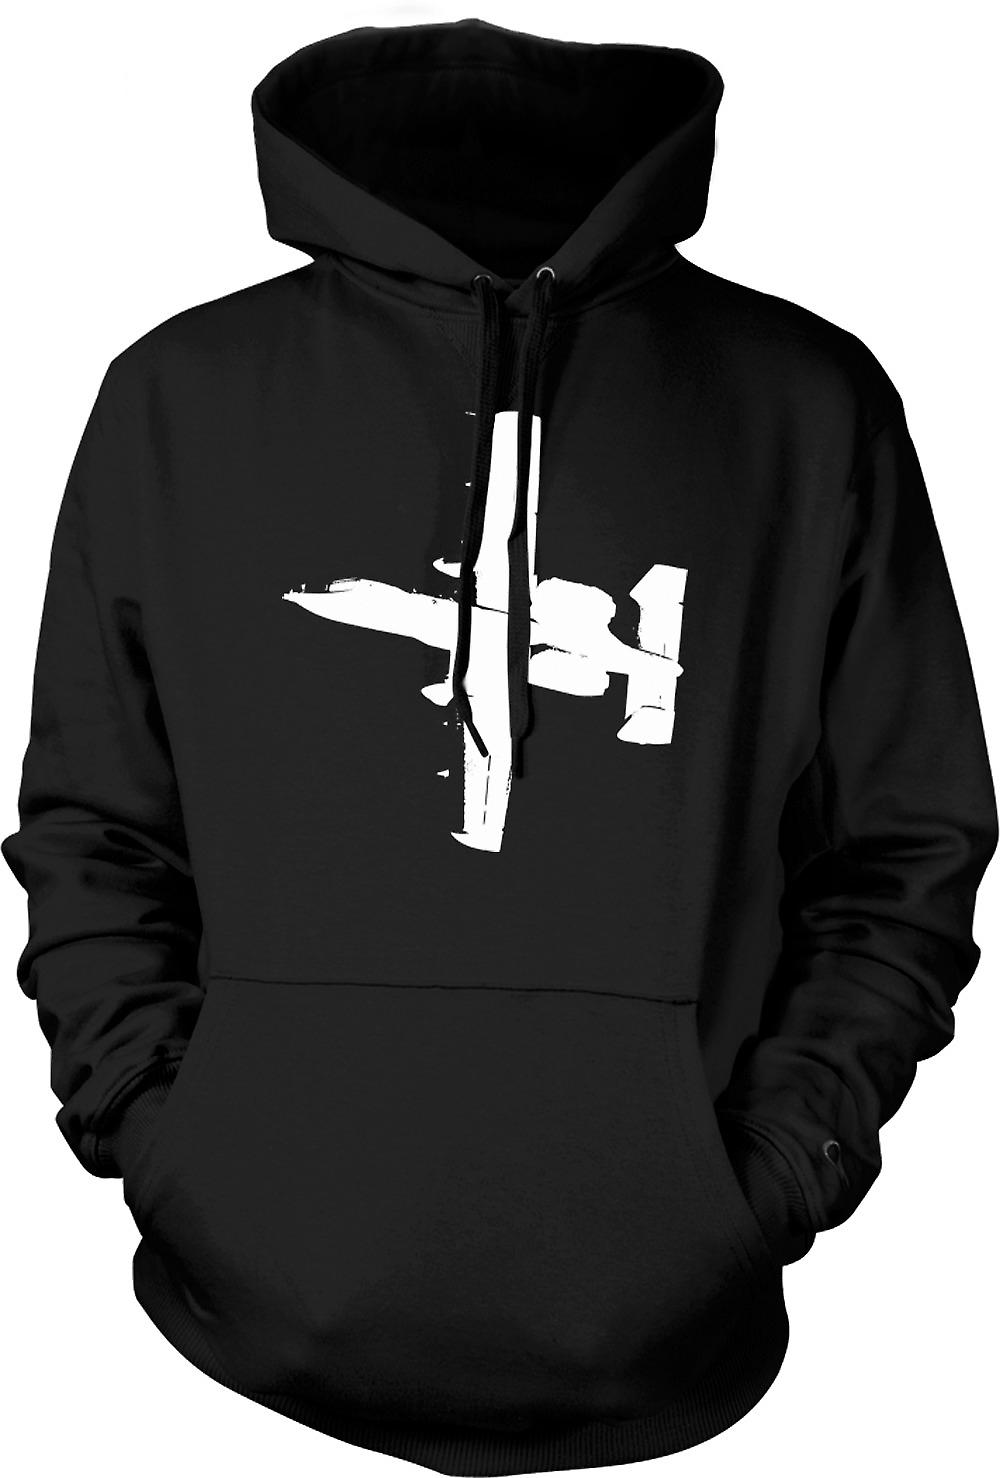 Mens Hoodie - A10 Thunderbolt Tank Buster - Awesome Fighter